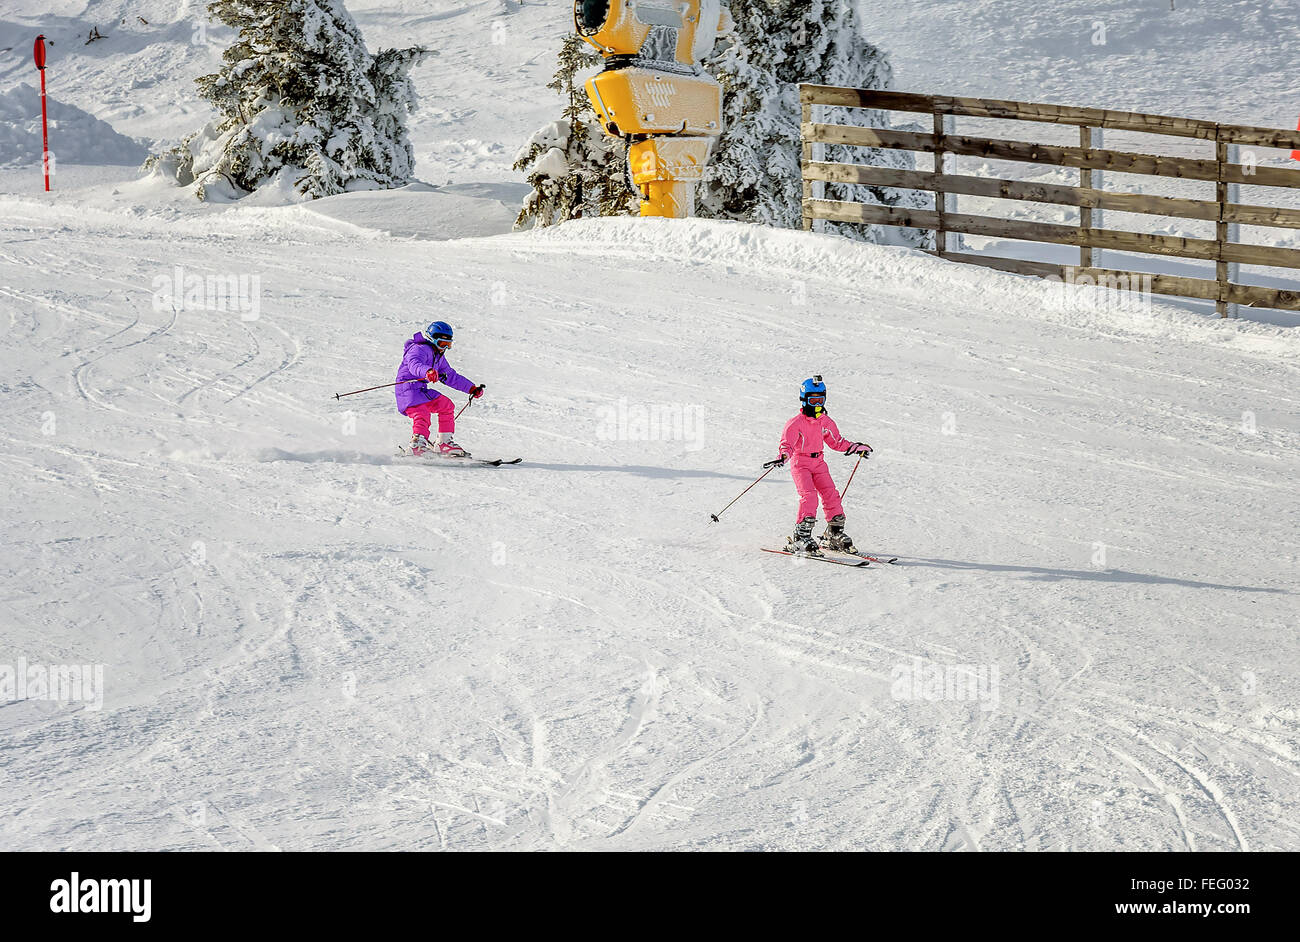 Two Little girls skiing fast downhill - Stock Image